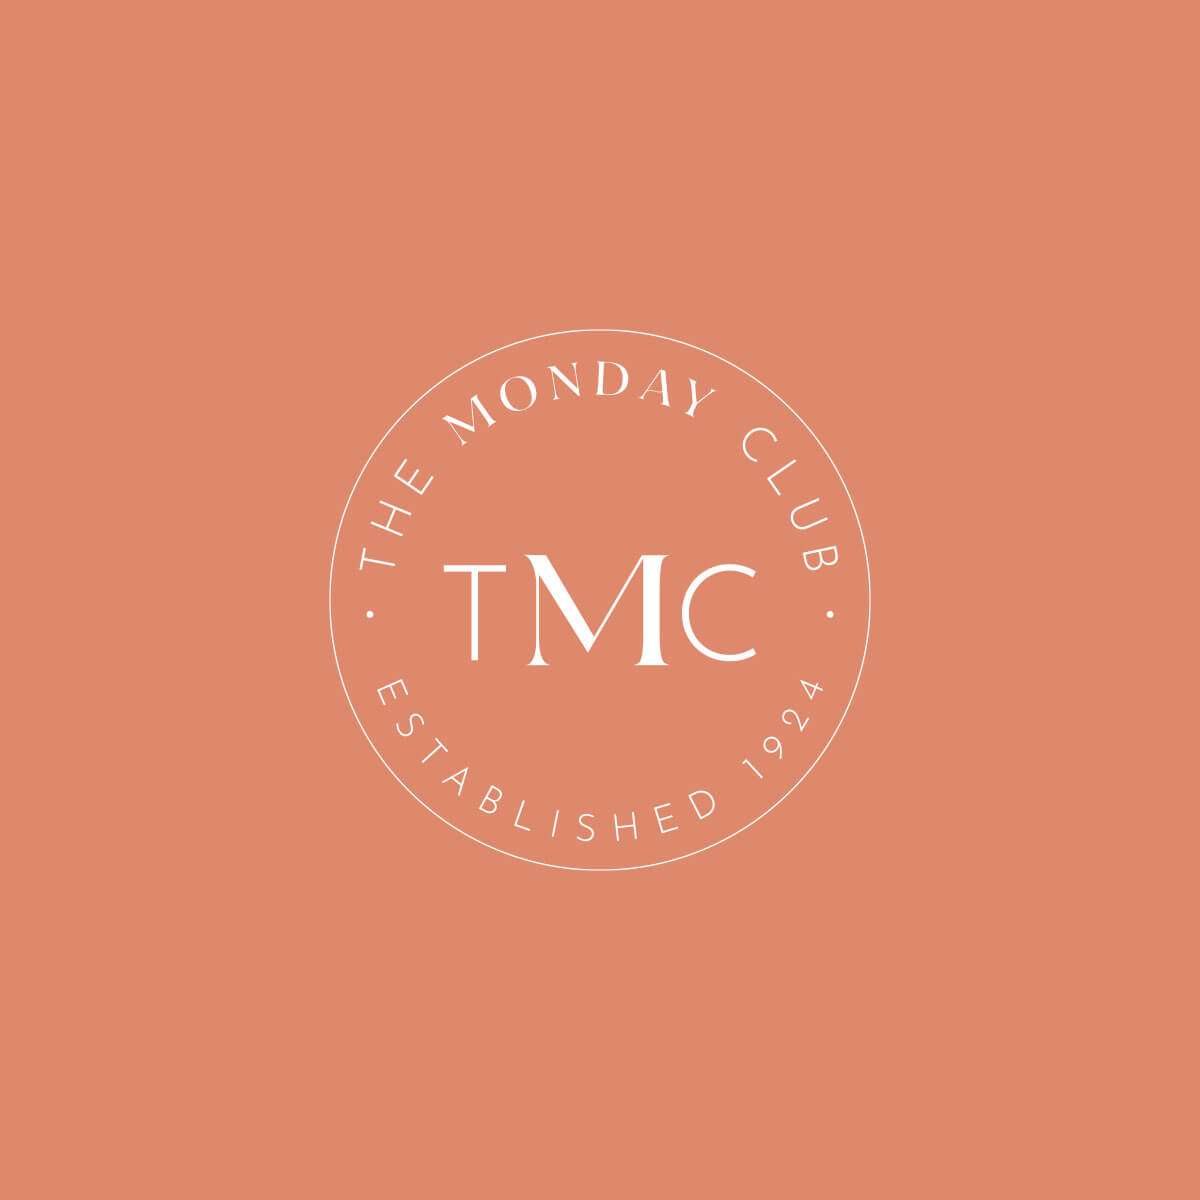 The Monday Club seal logo on a salmon background